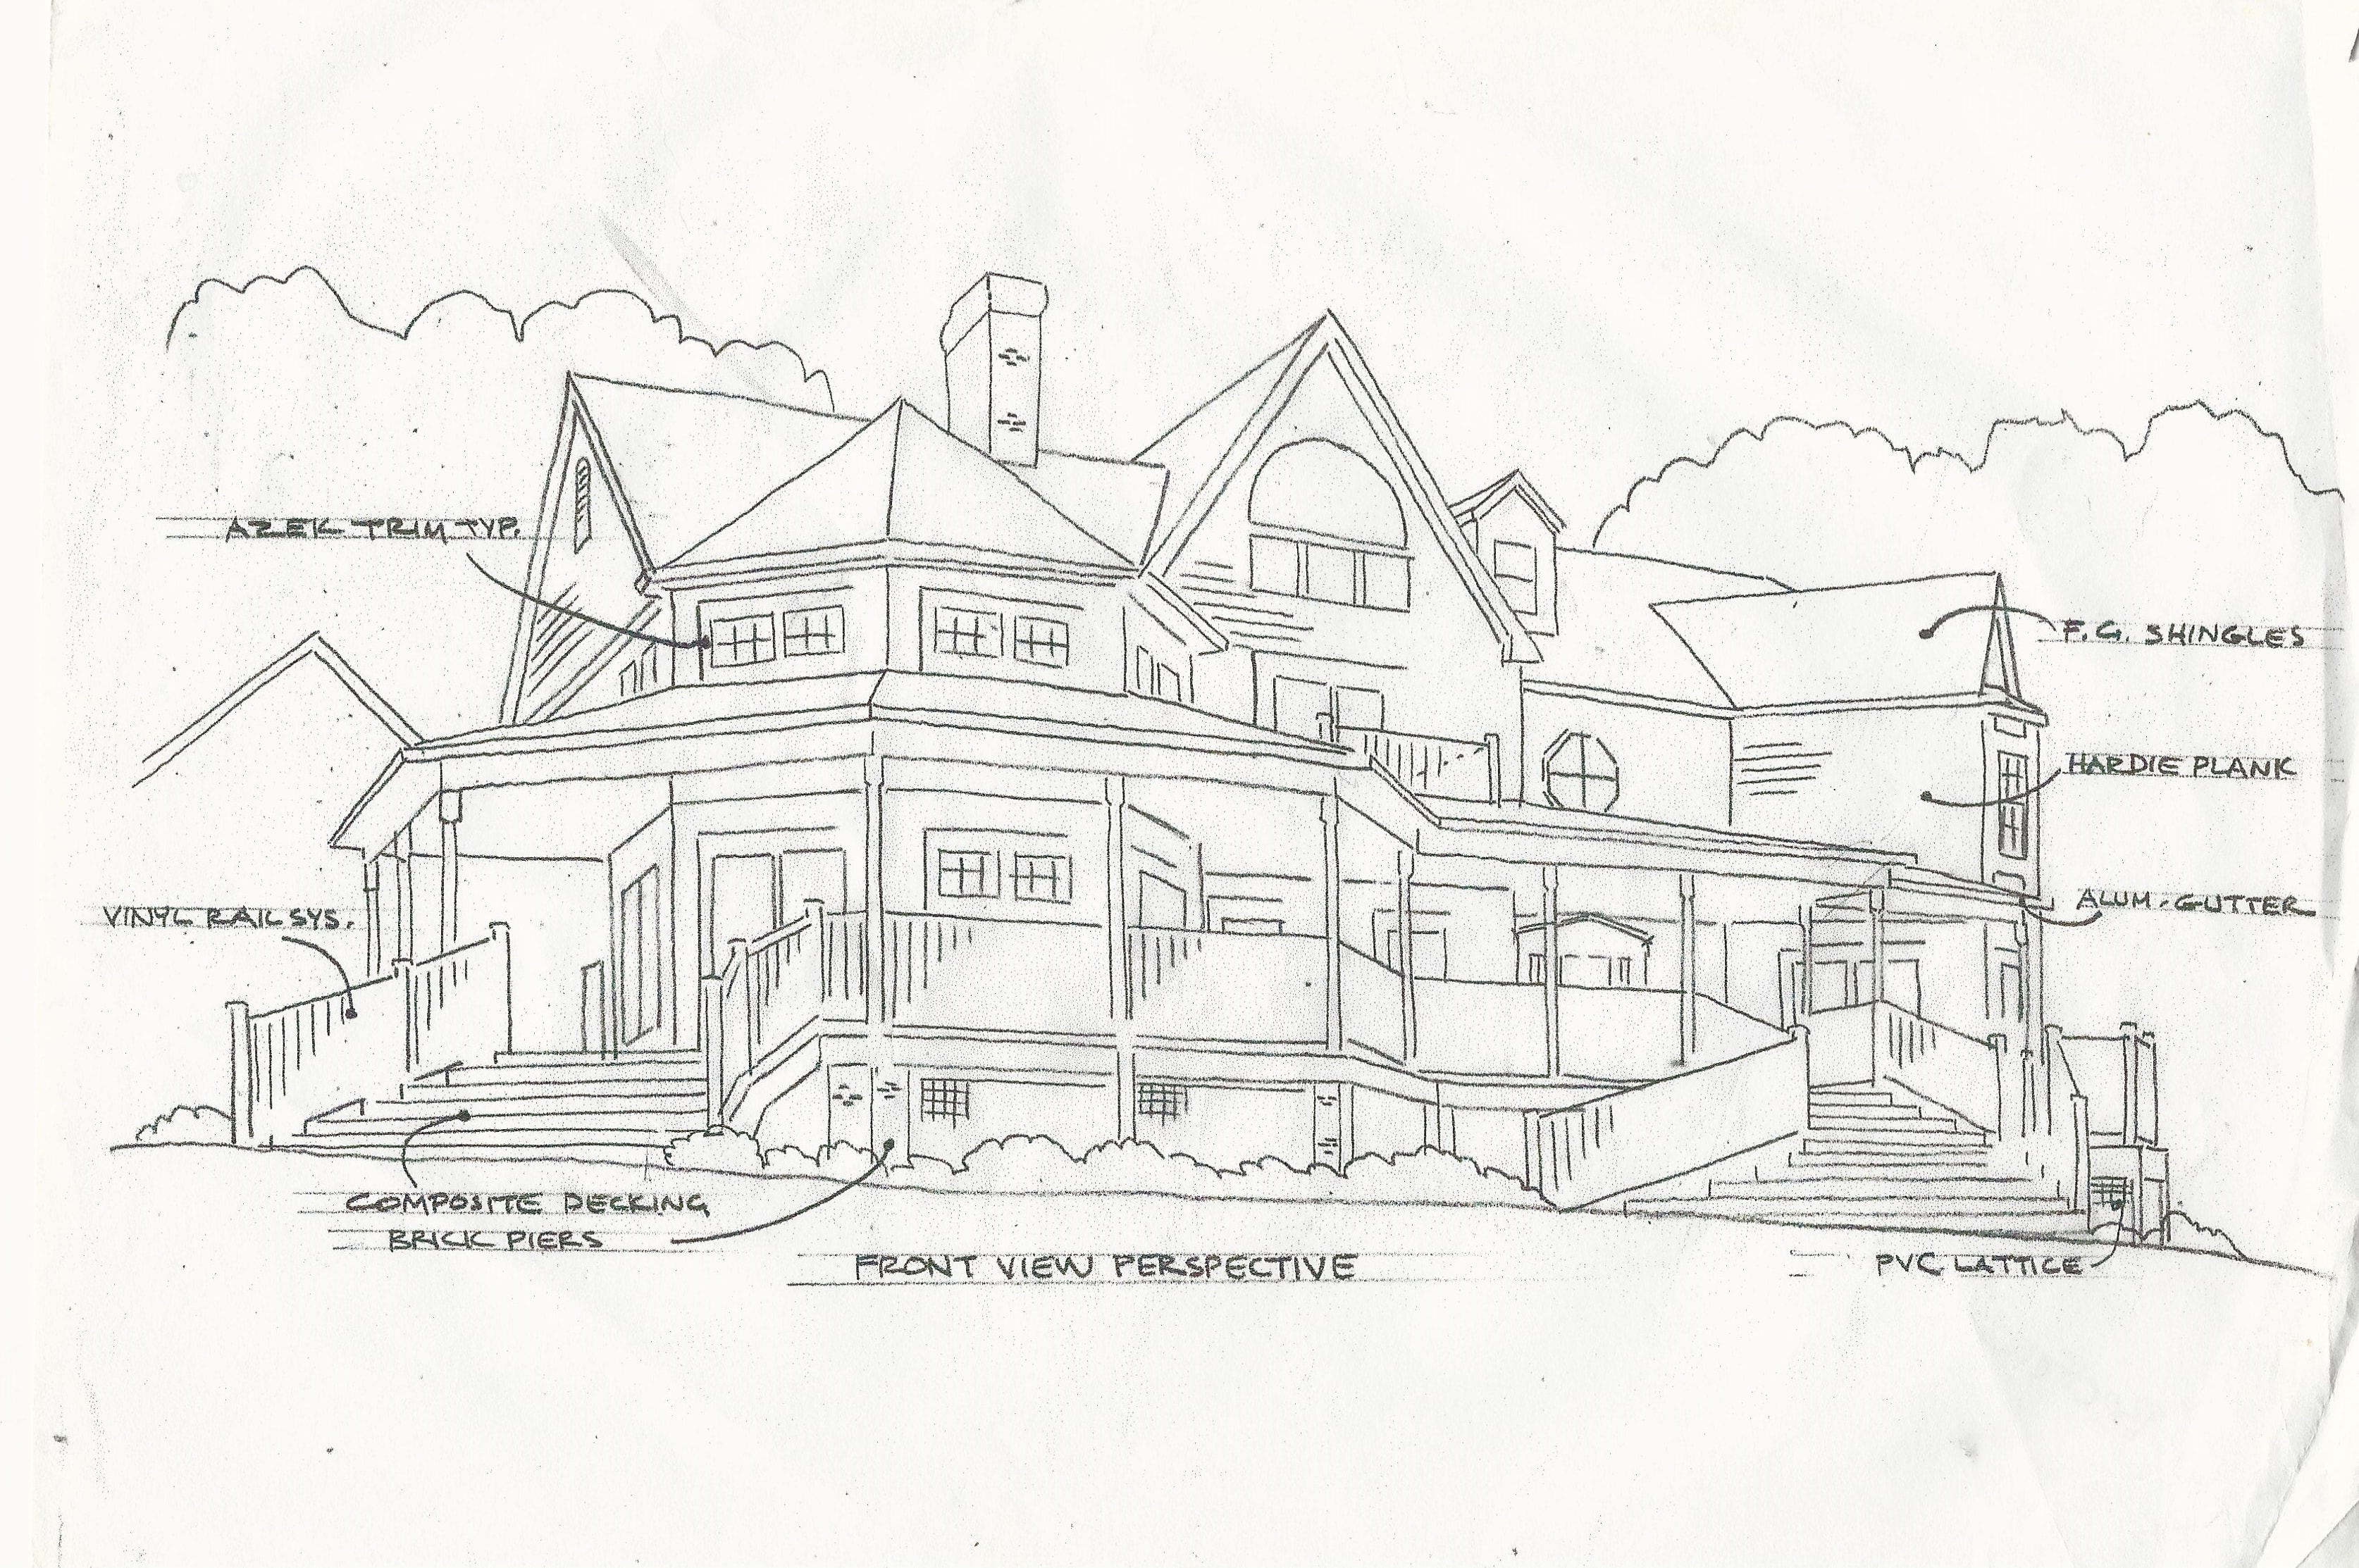 Sketch to Finish - Post & Beam Design Build on house construction, house layout design, house template, house model design, house drawing, house painting design, house art design, house design blueprint, house perspective design, house autocad, house architecture design, house graphic design, house light design, house green design, sketchup house design, green building design, house studio design, product page design, house study design, house plans with furniture layouts,